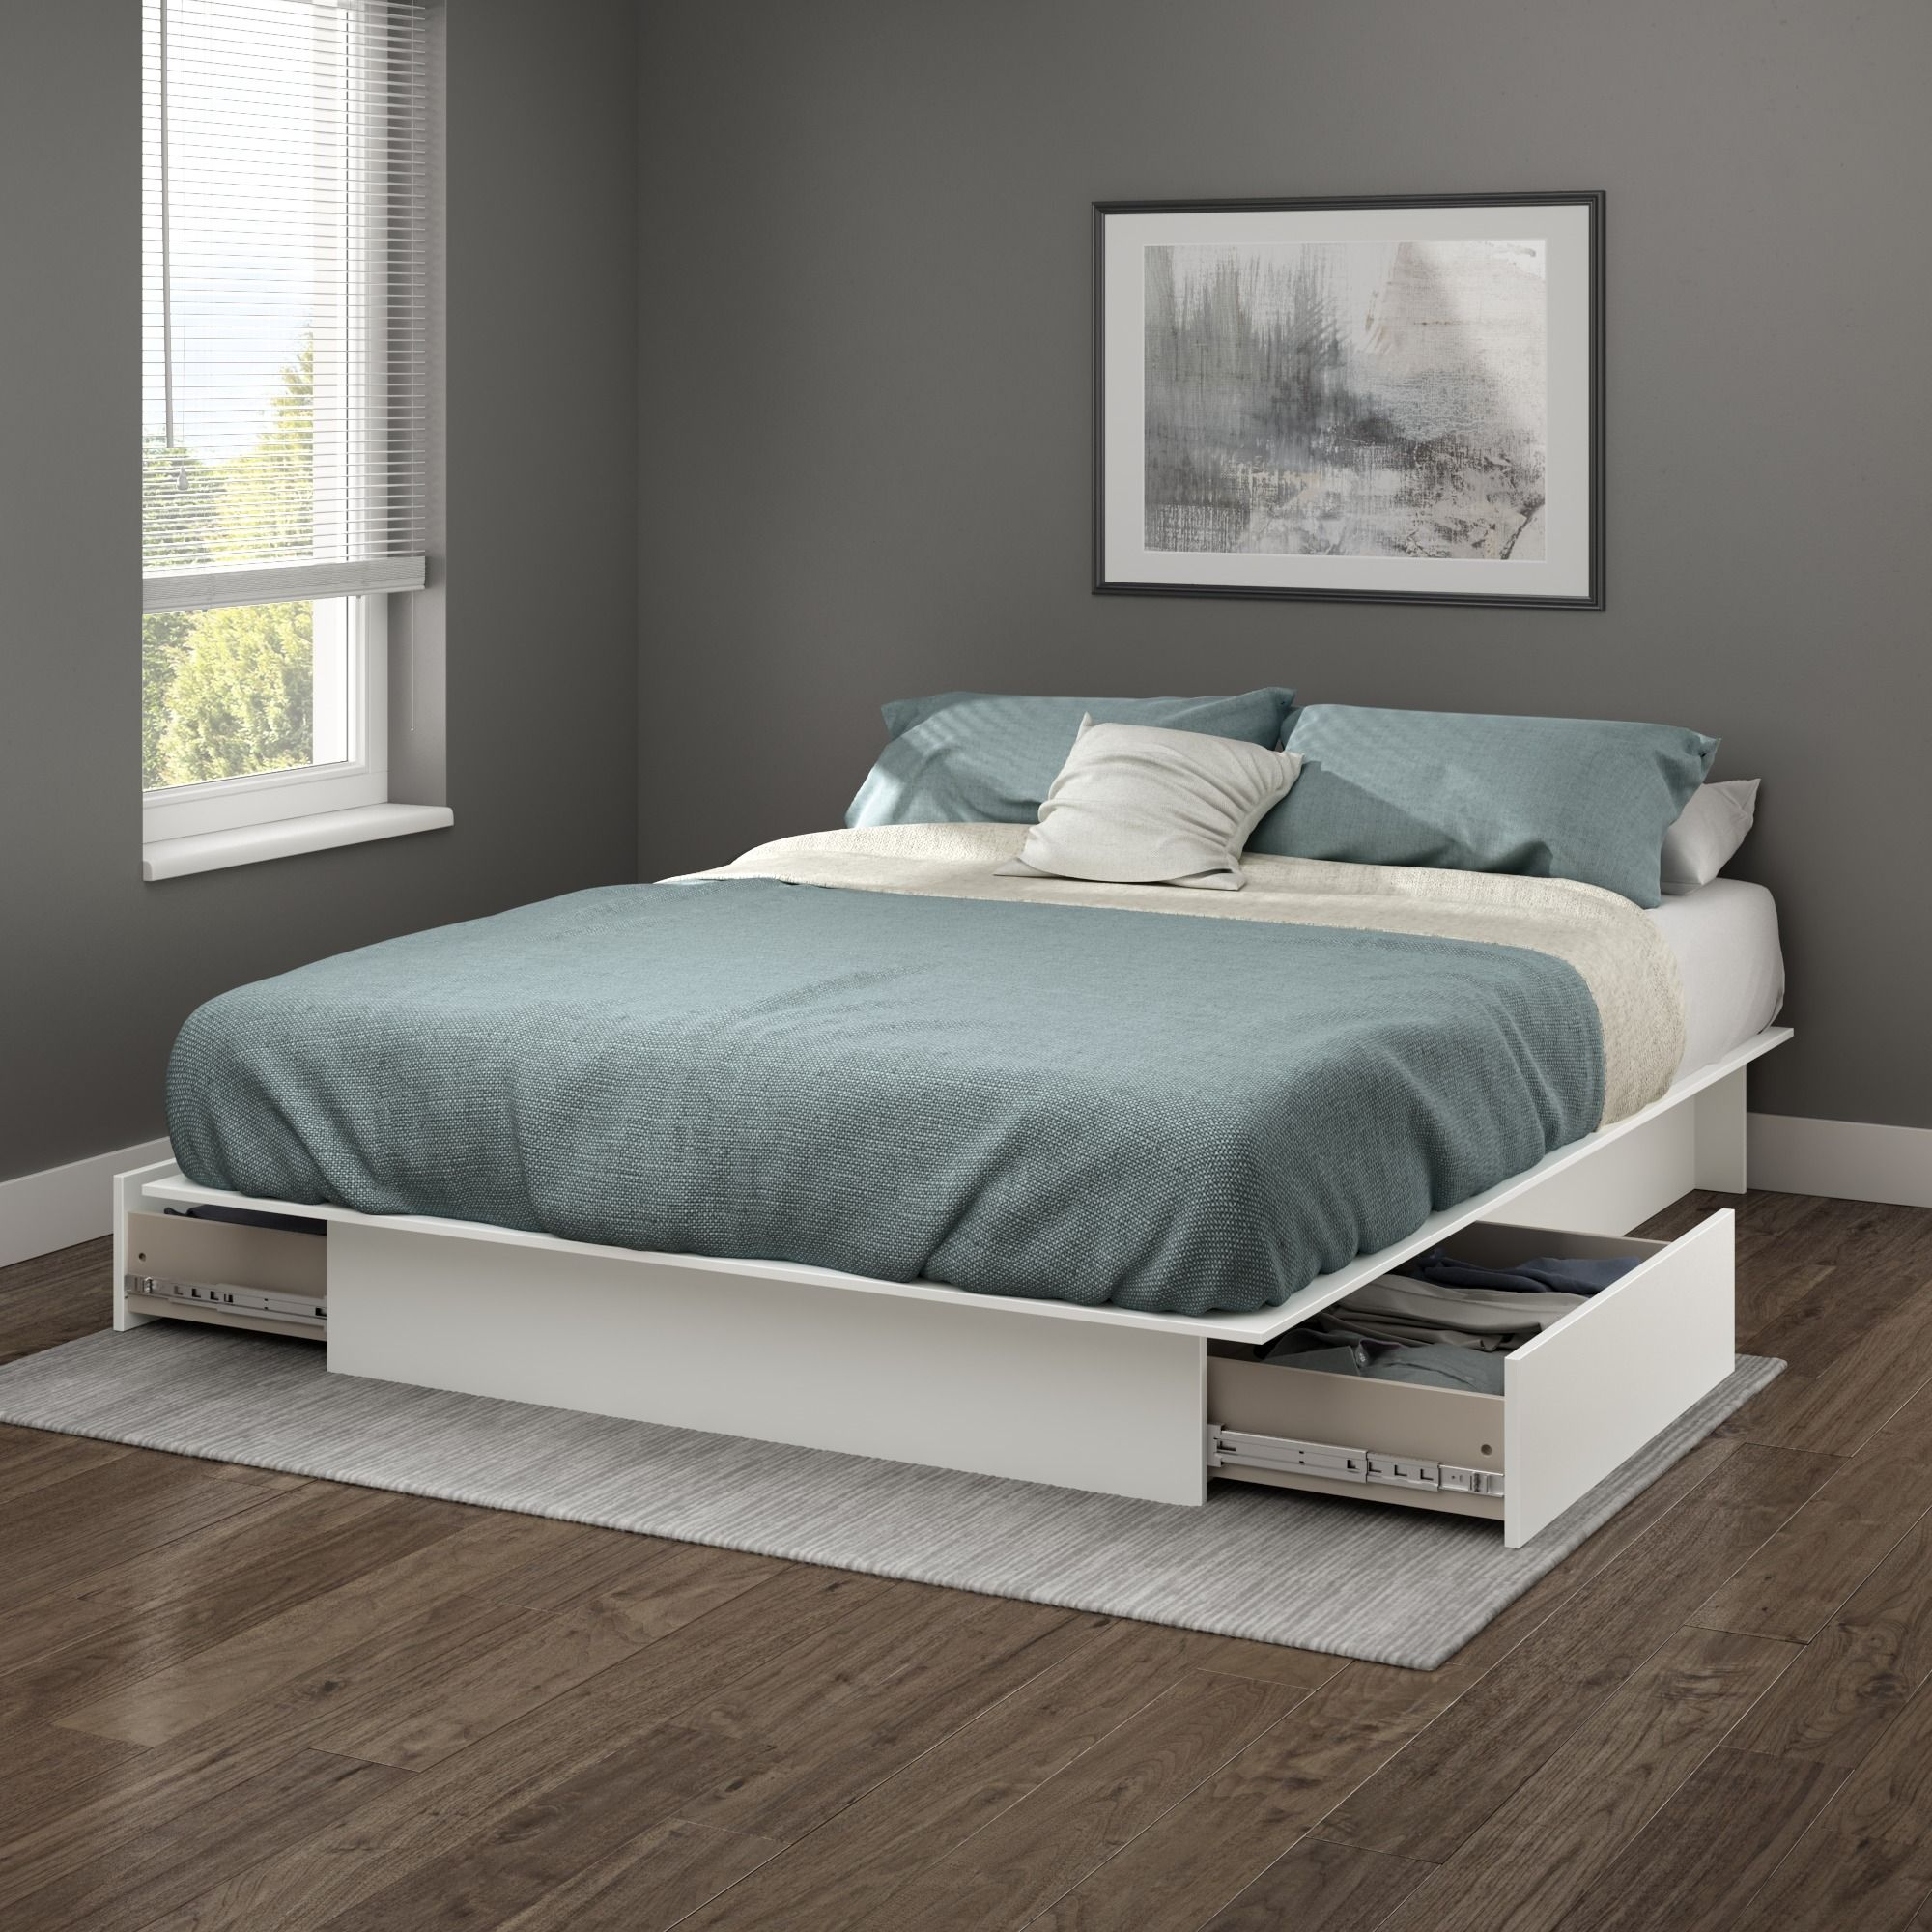 Home In 2020 White Platform Bed Bed With Drawers Bed Frame